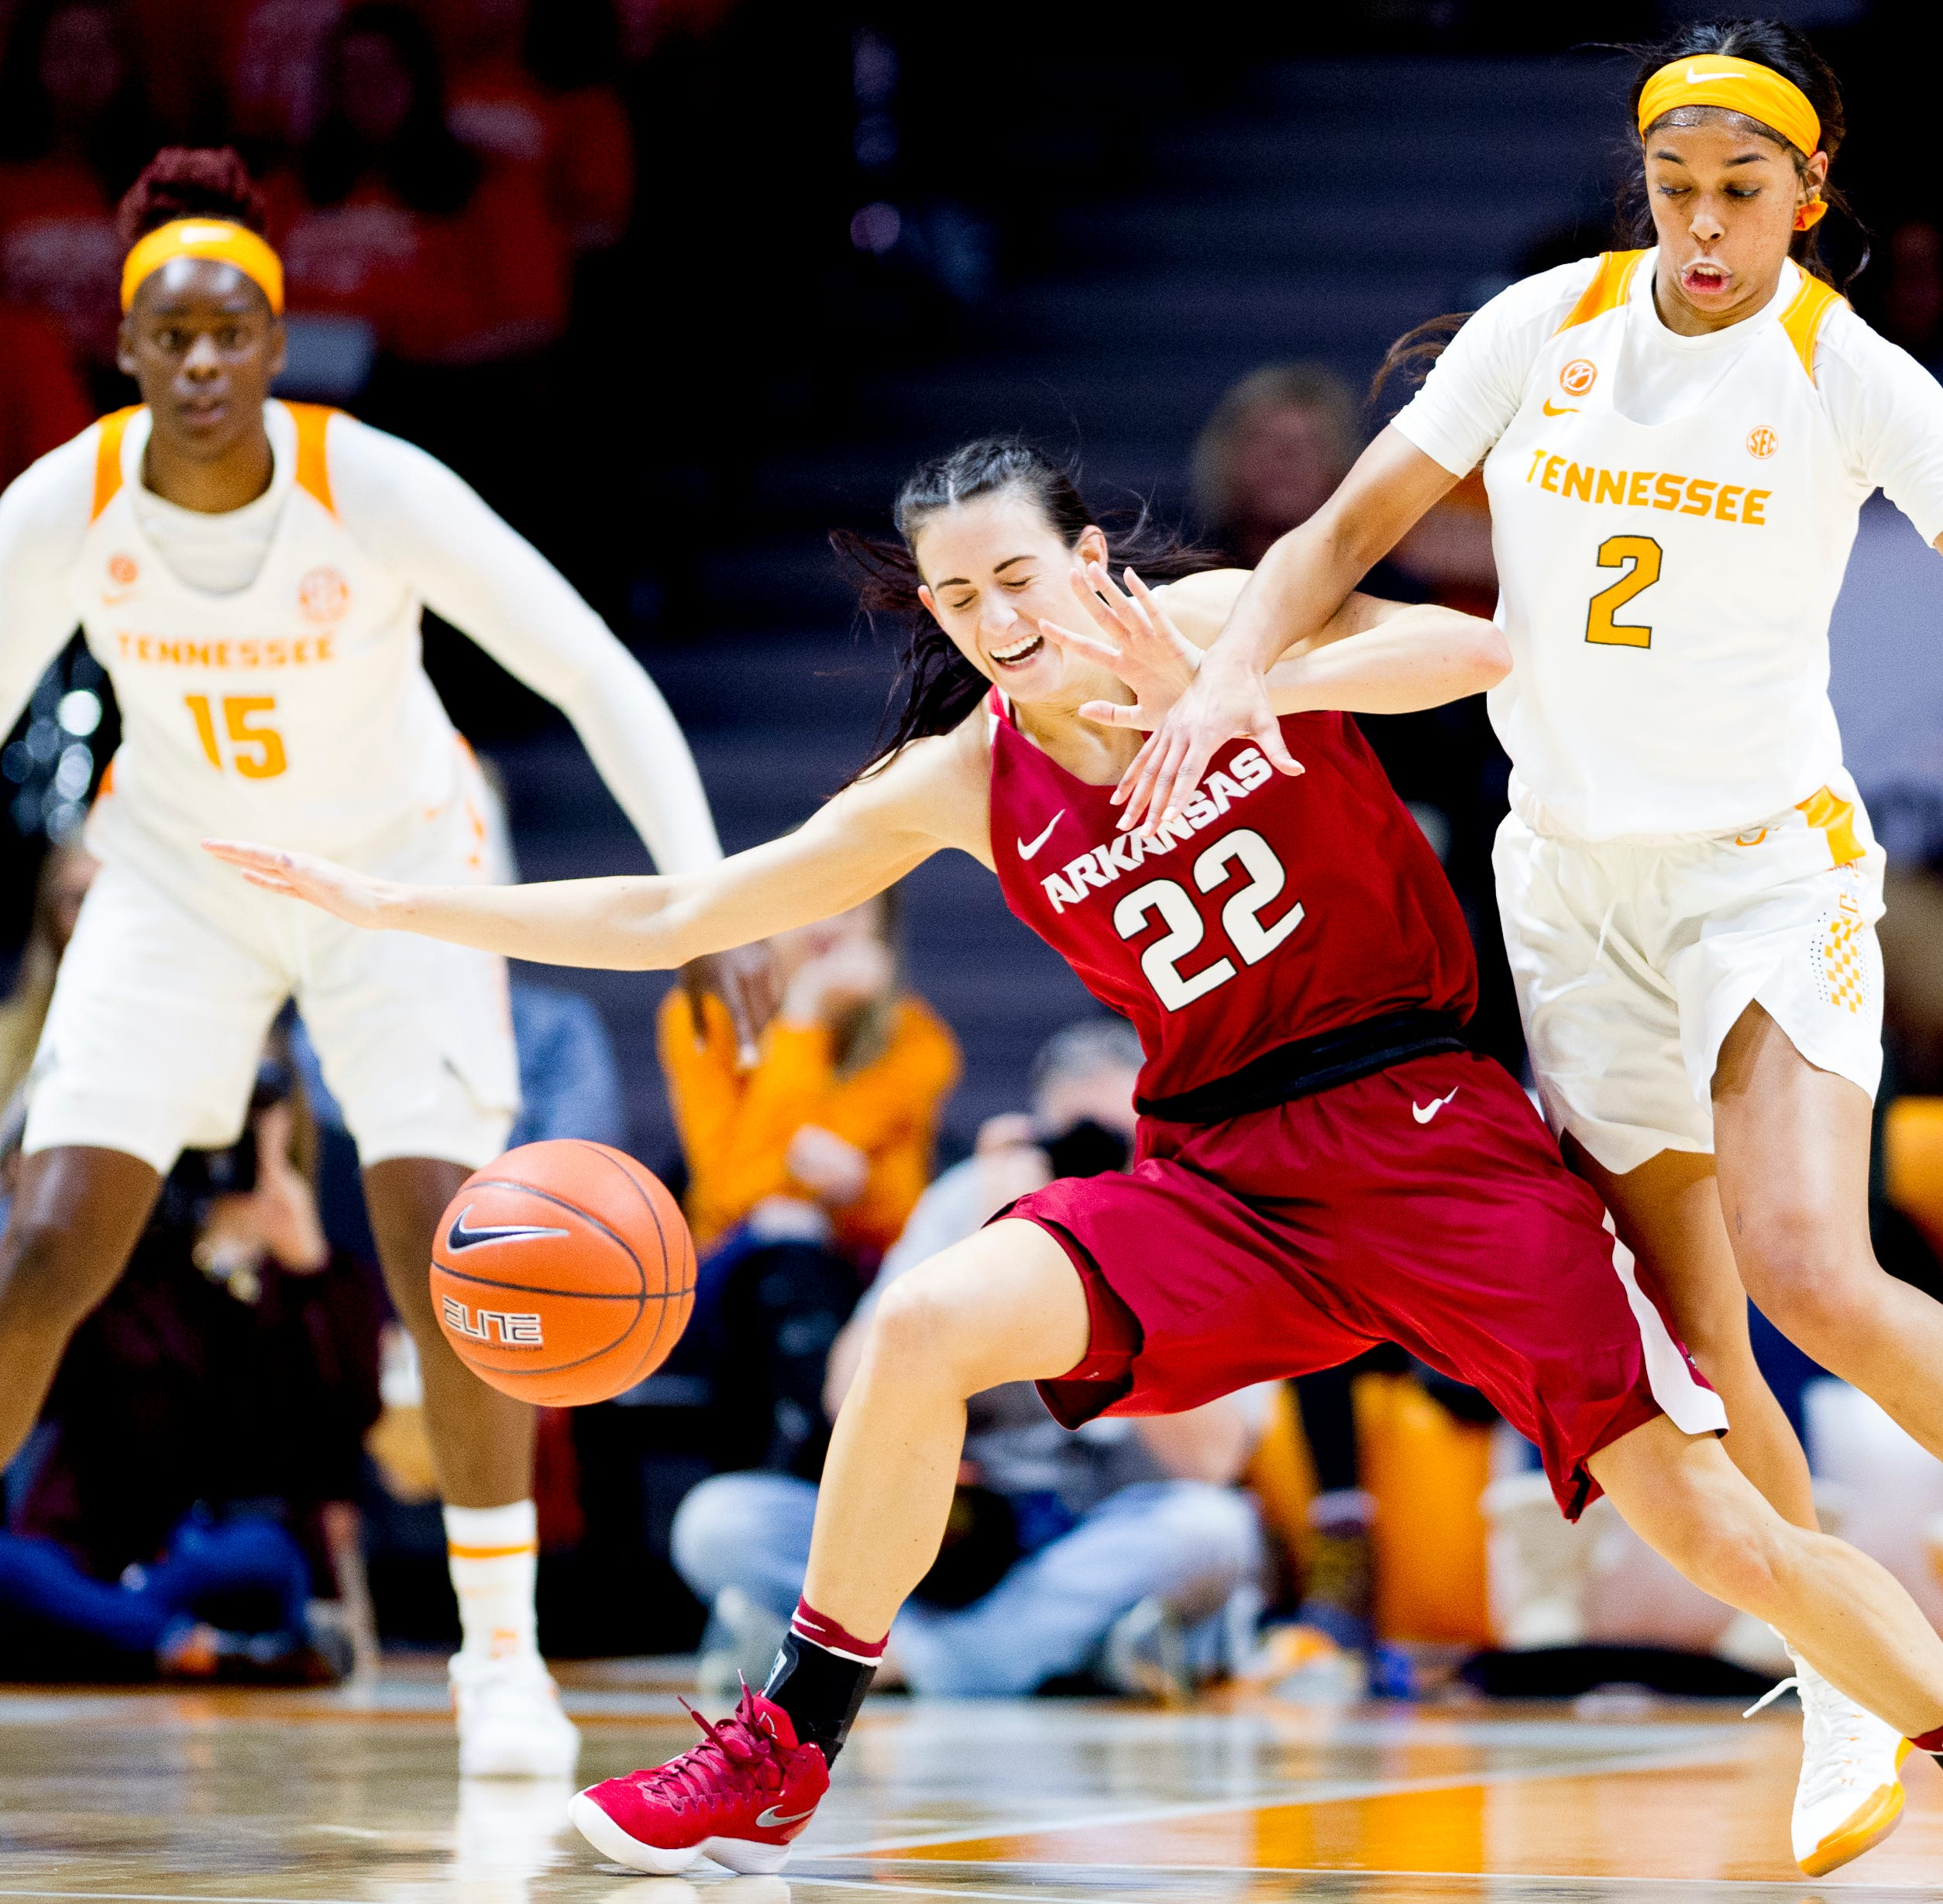 UT Lady Vols lose fifth in a row, falling to Arkansas 80-79 after dropping out of AP poll